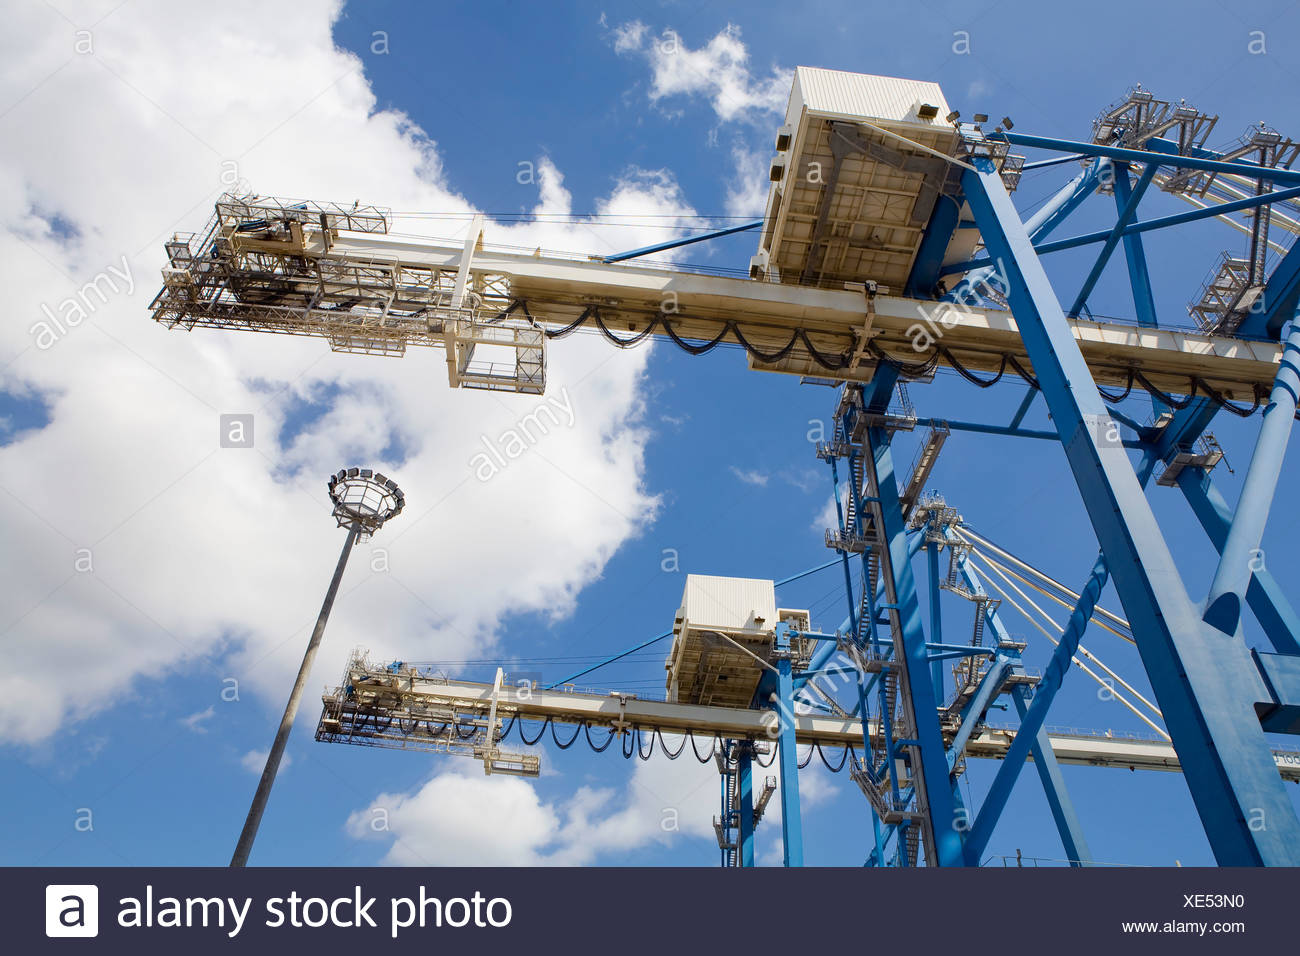 Limassol, Cyprus, Dockside cranes used for unloading container ships. - Stock Image